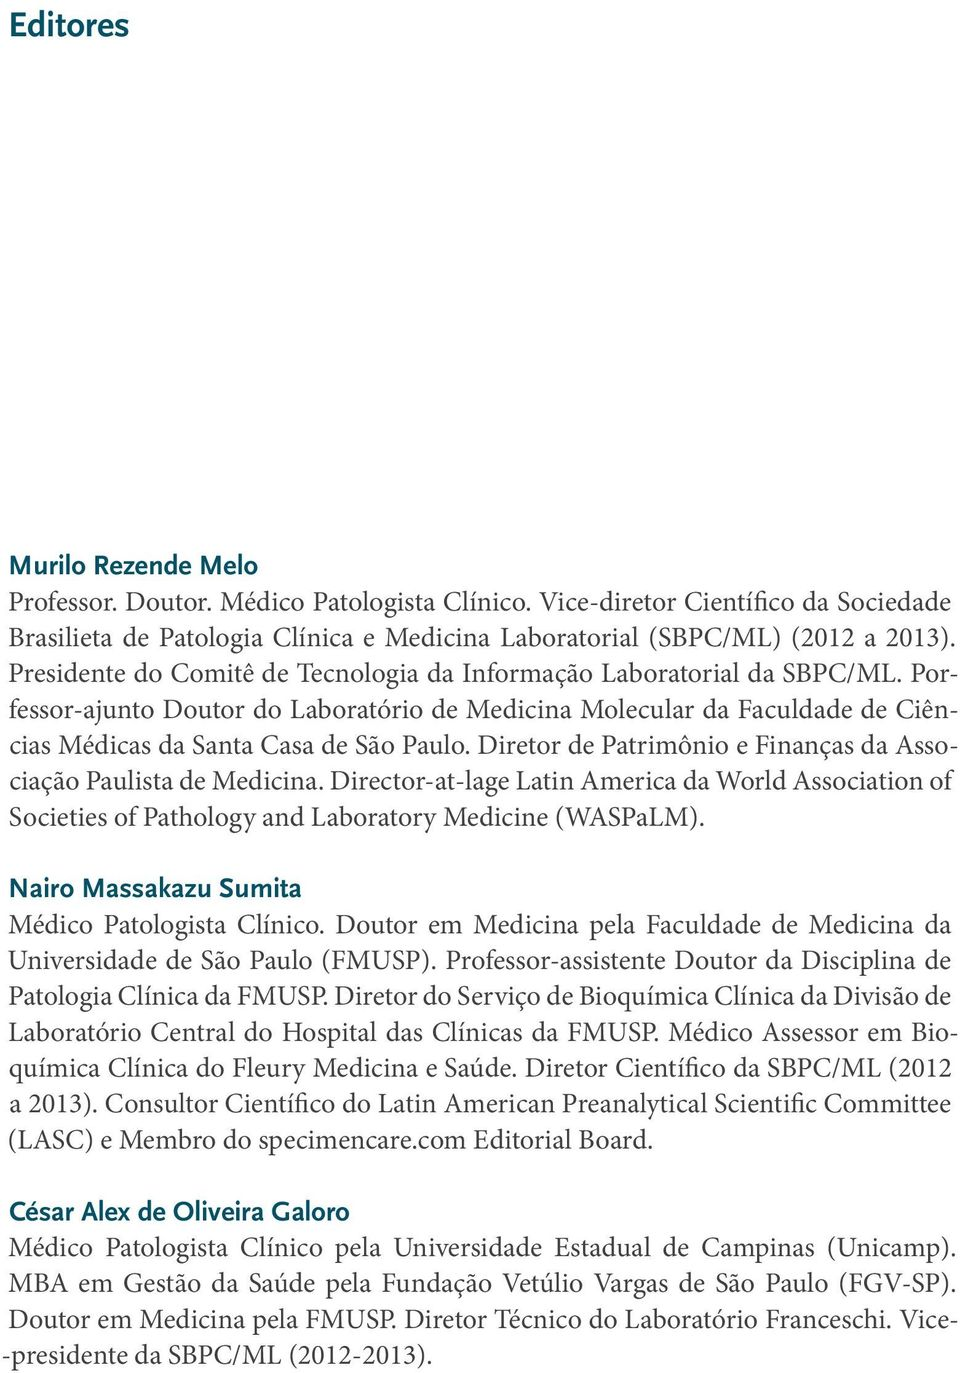 Diretor de Patrimônio e Finanças da Associação Paulista de Medicina. Director-at-lage Latin America da World Association of Societies of Pathology and Laboratory Medicine (WASPaLM).